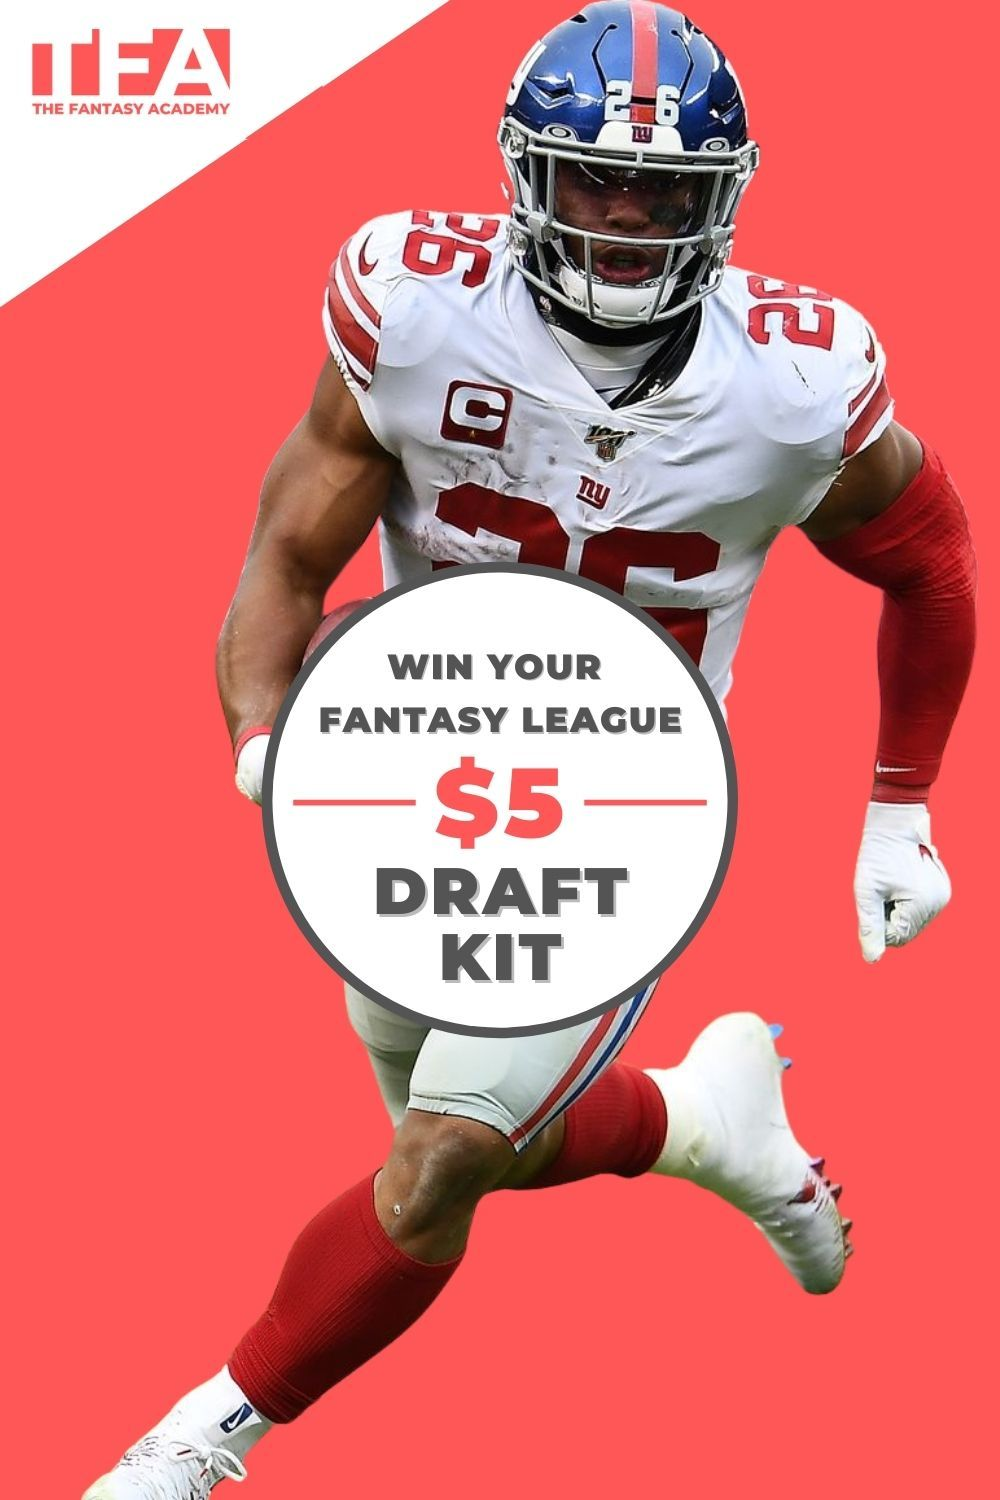 The Fantasy Academy 2020 Draft Kit In 2020 Fantasy Football Strategy Fantasy Football Names Fantasy Football Players